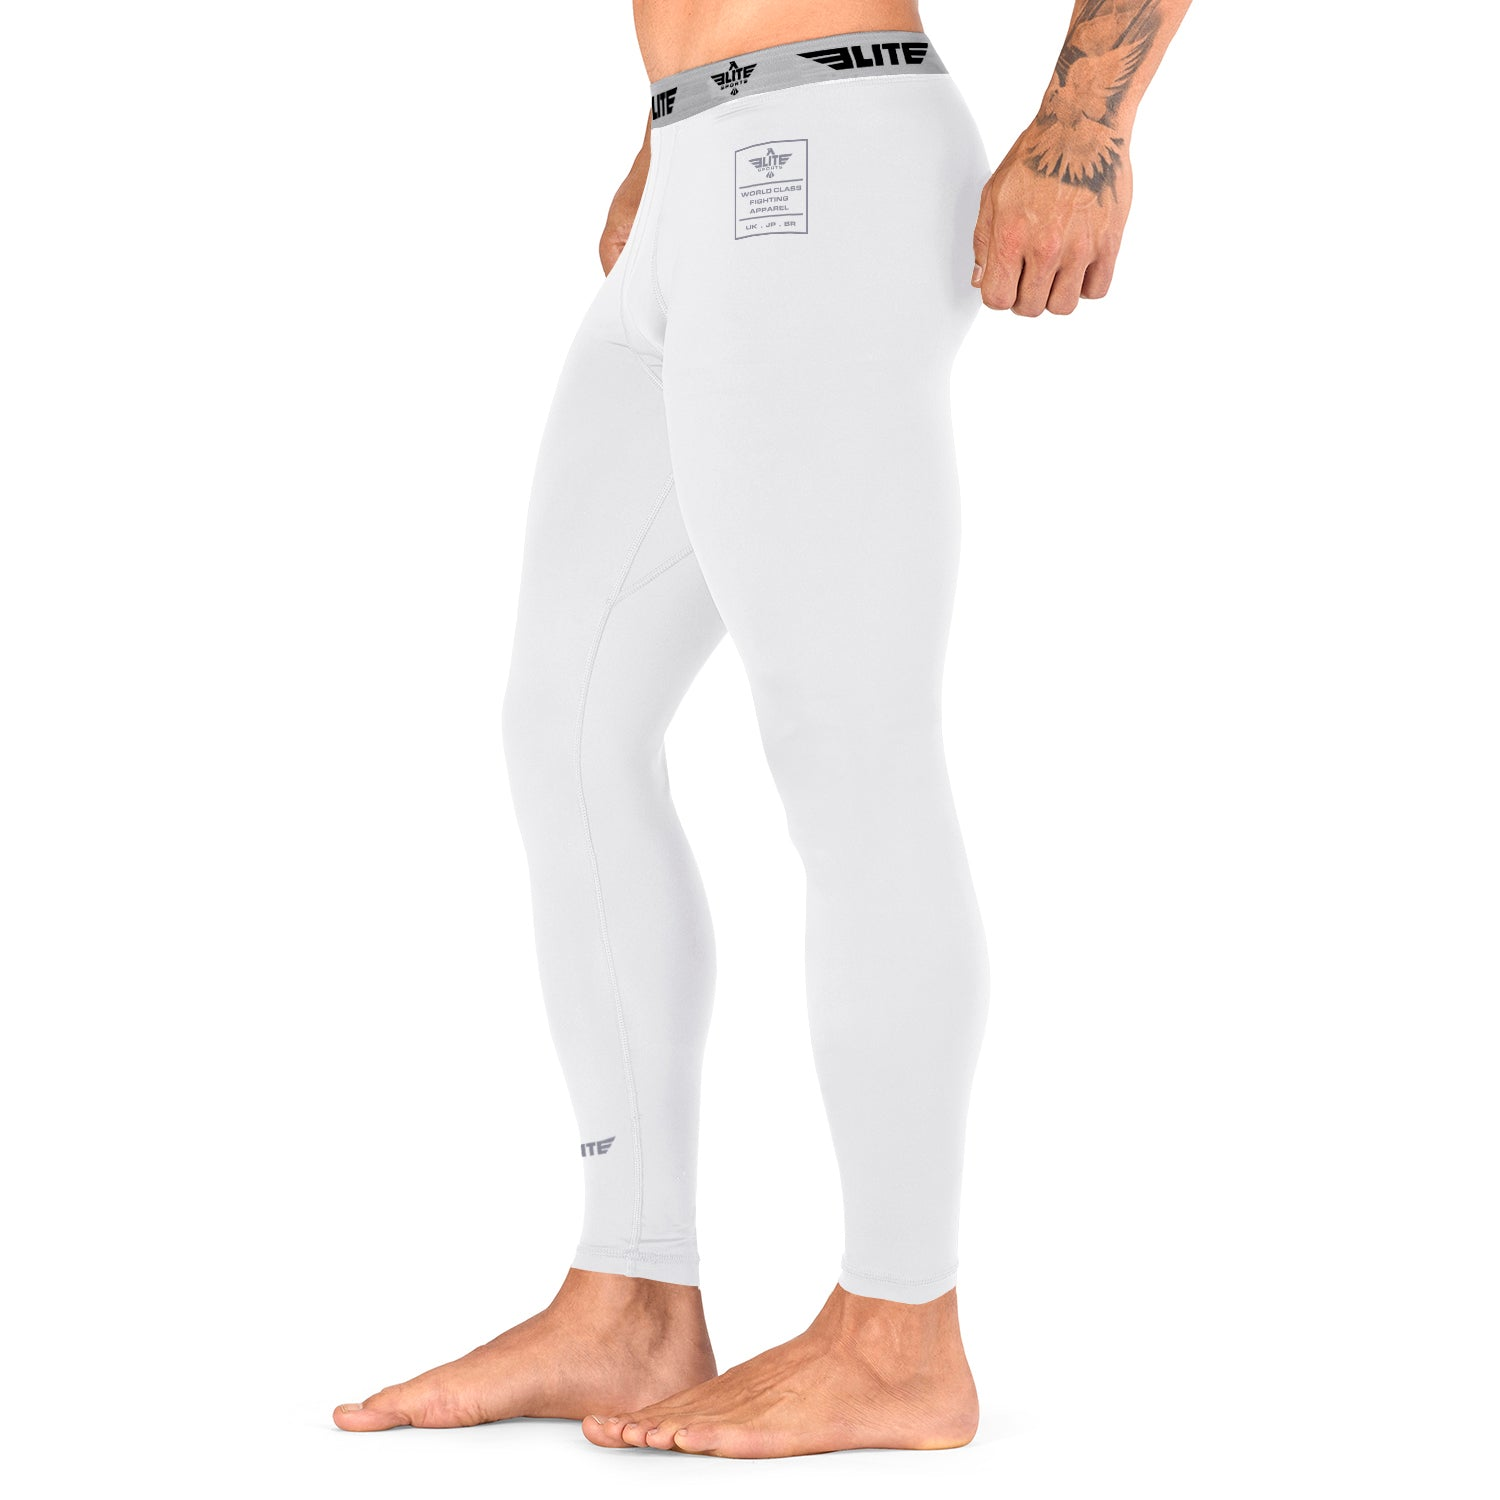 Load image into Gallery viewer, Elite Sports Plain White Compression Training Spat Pants